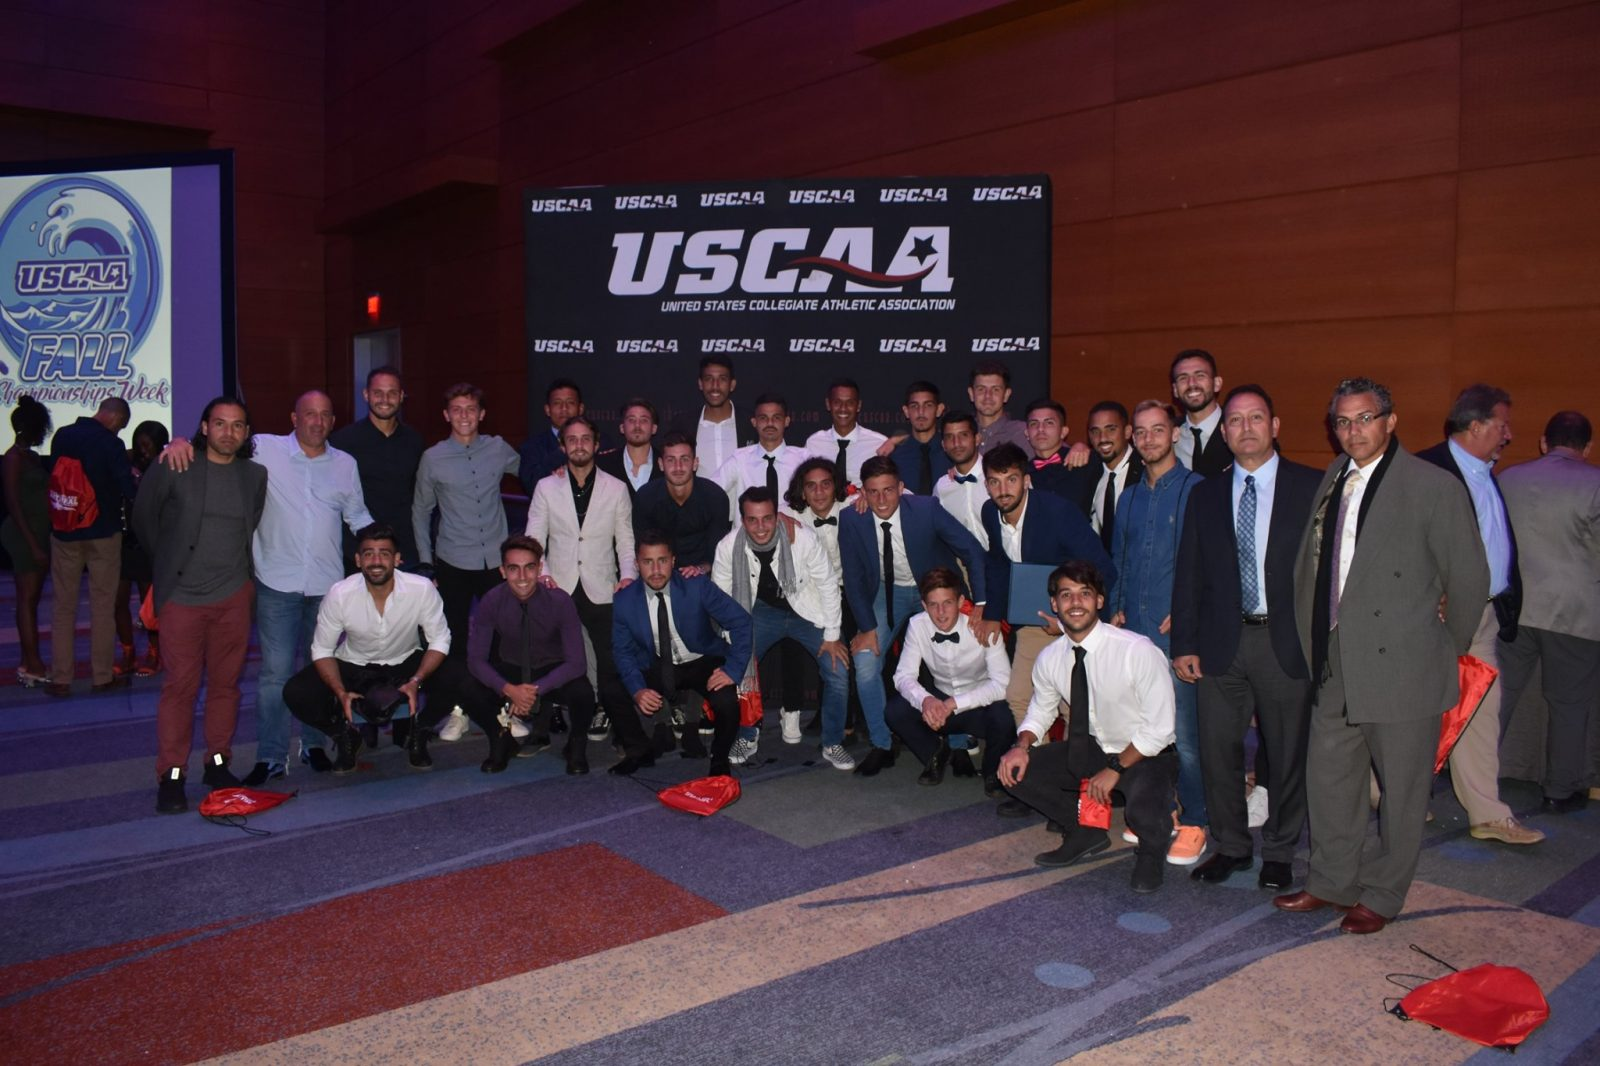 MEn's soccer at the USCAA Annual Banquet